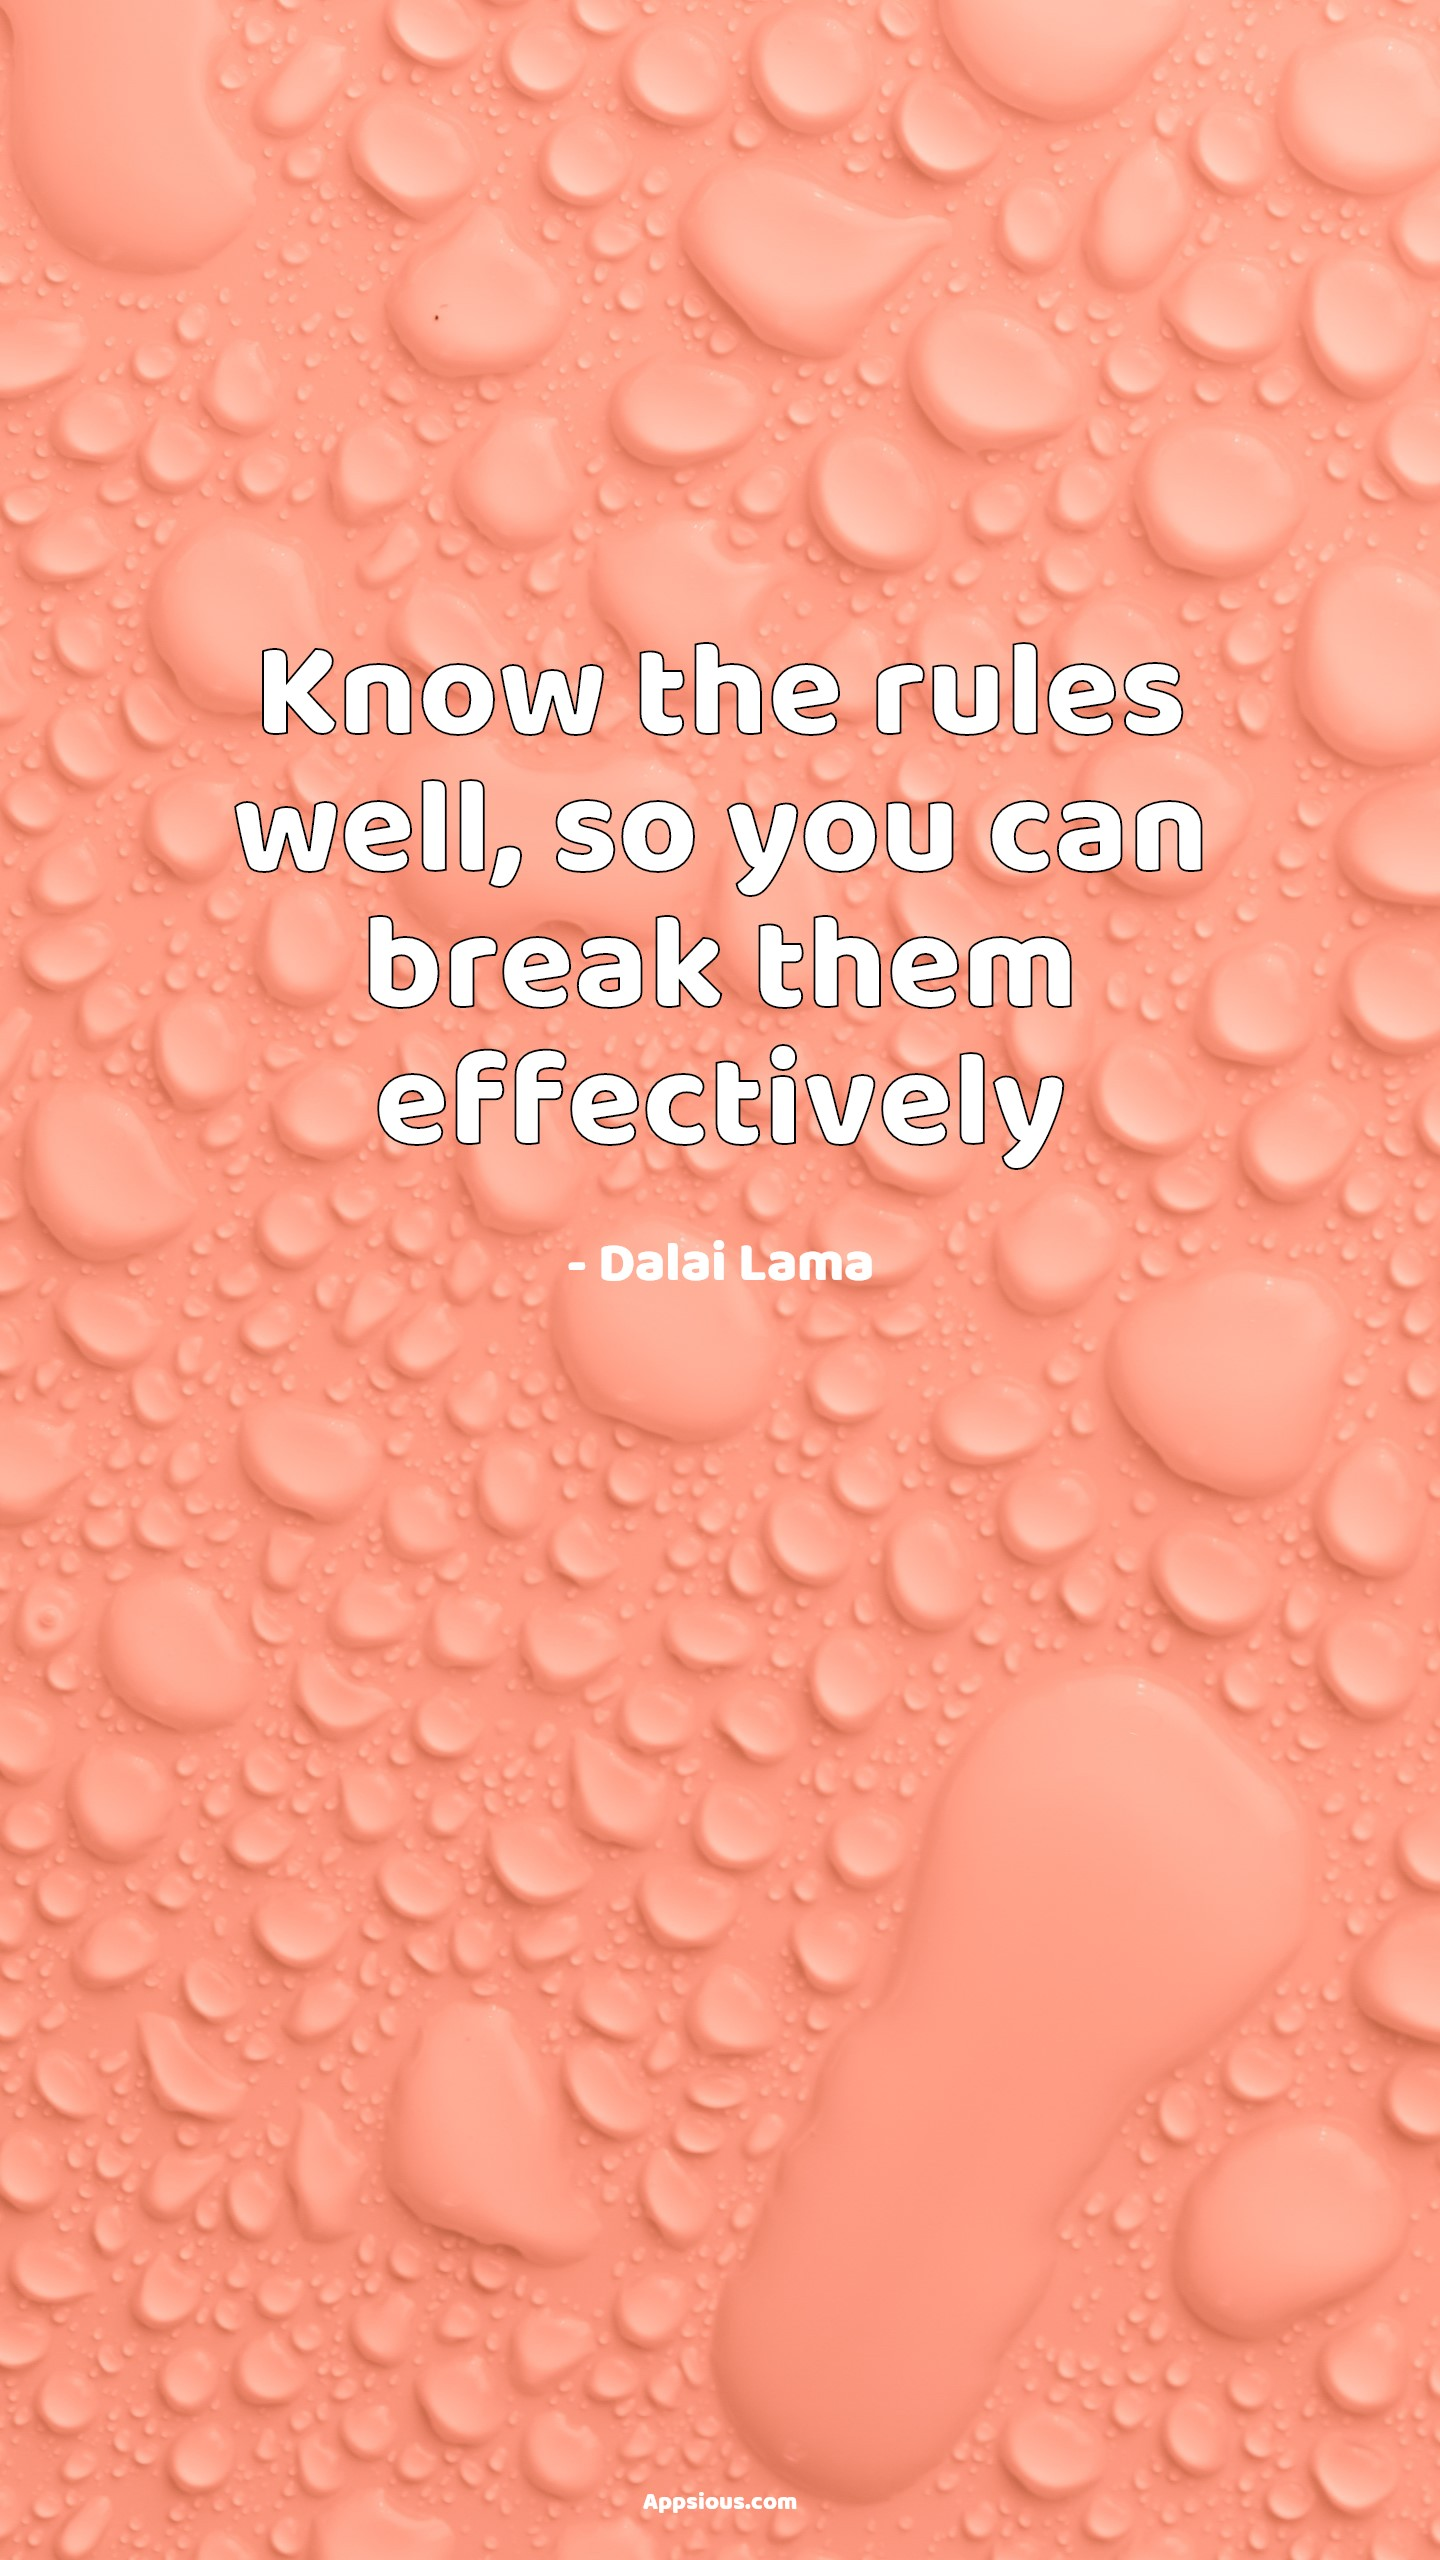 Know the rules well, so you can break them effectively